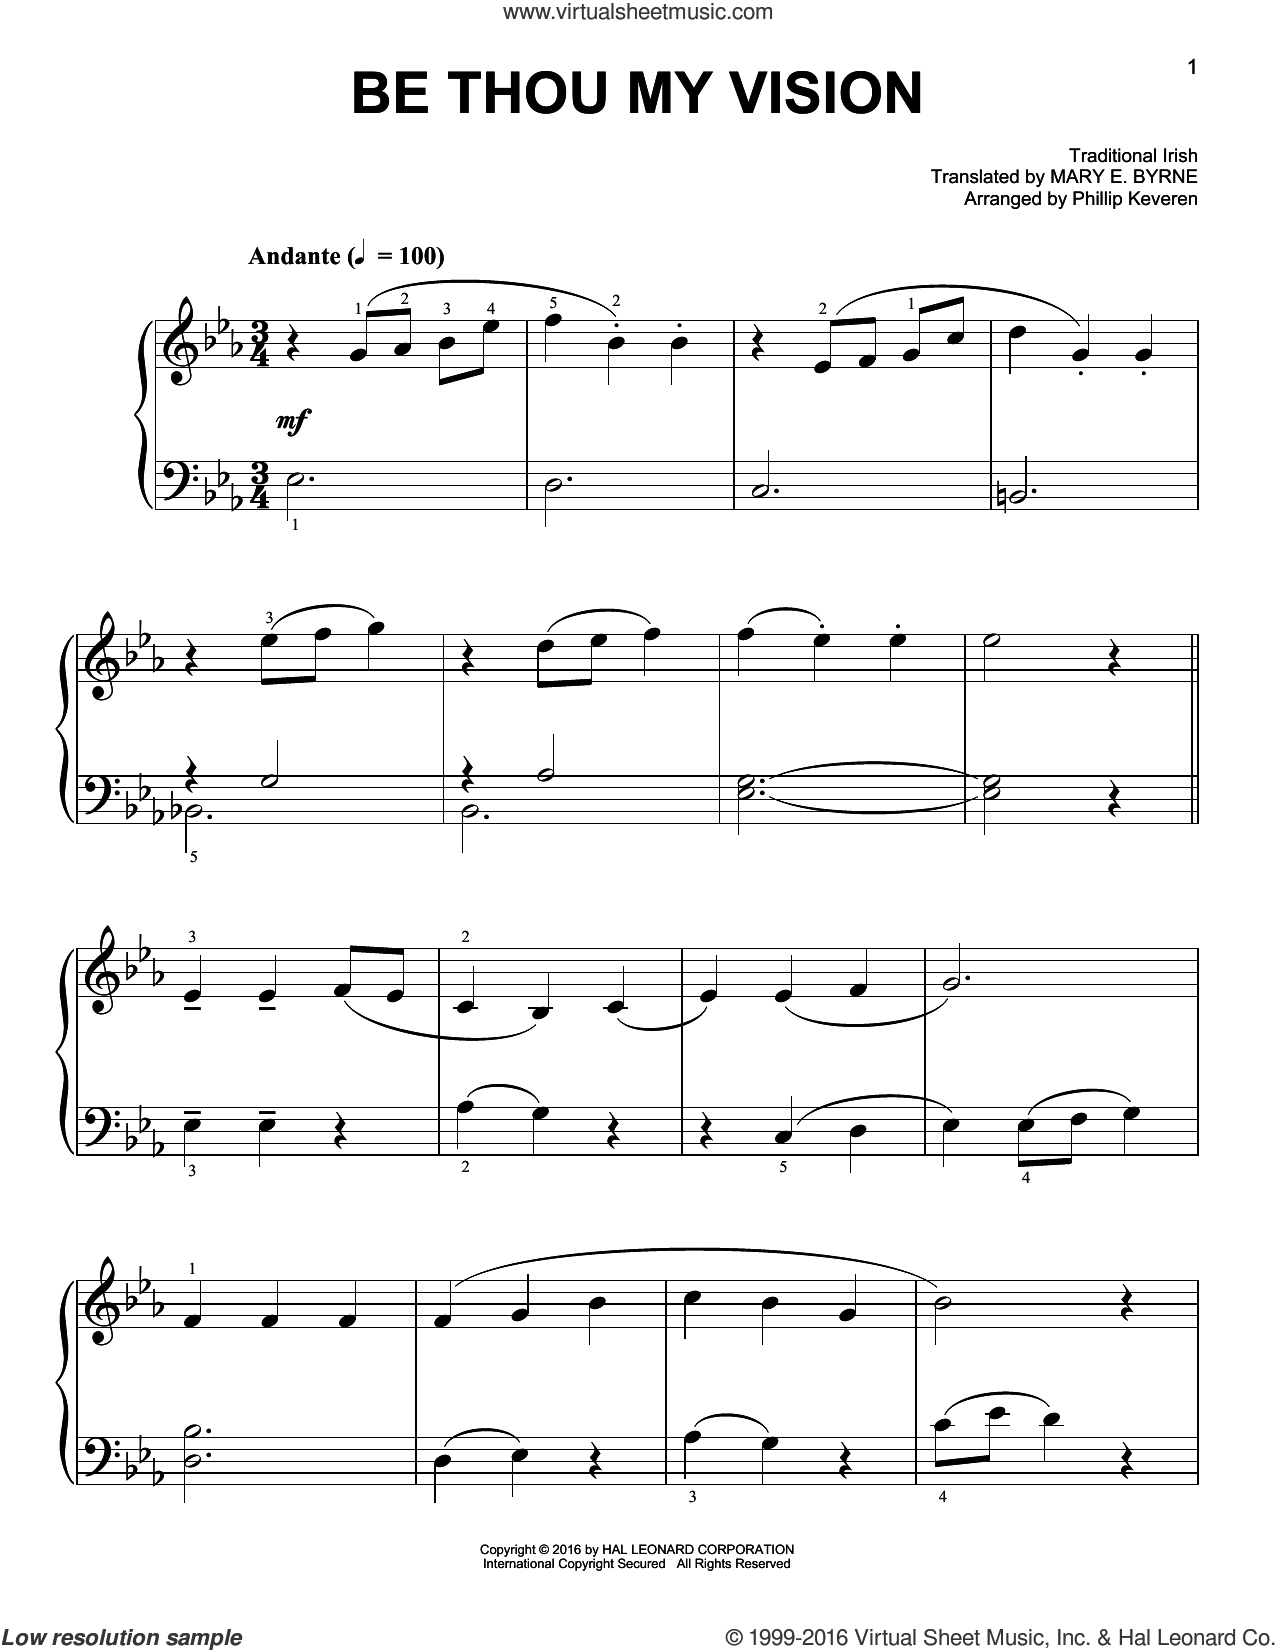 Be Thou My Vision [Classical version] (arr. Phillip Keveren) sheet music for piano solo by Traditional Irish and Phillip Keveren, easy skill level